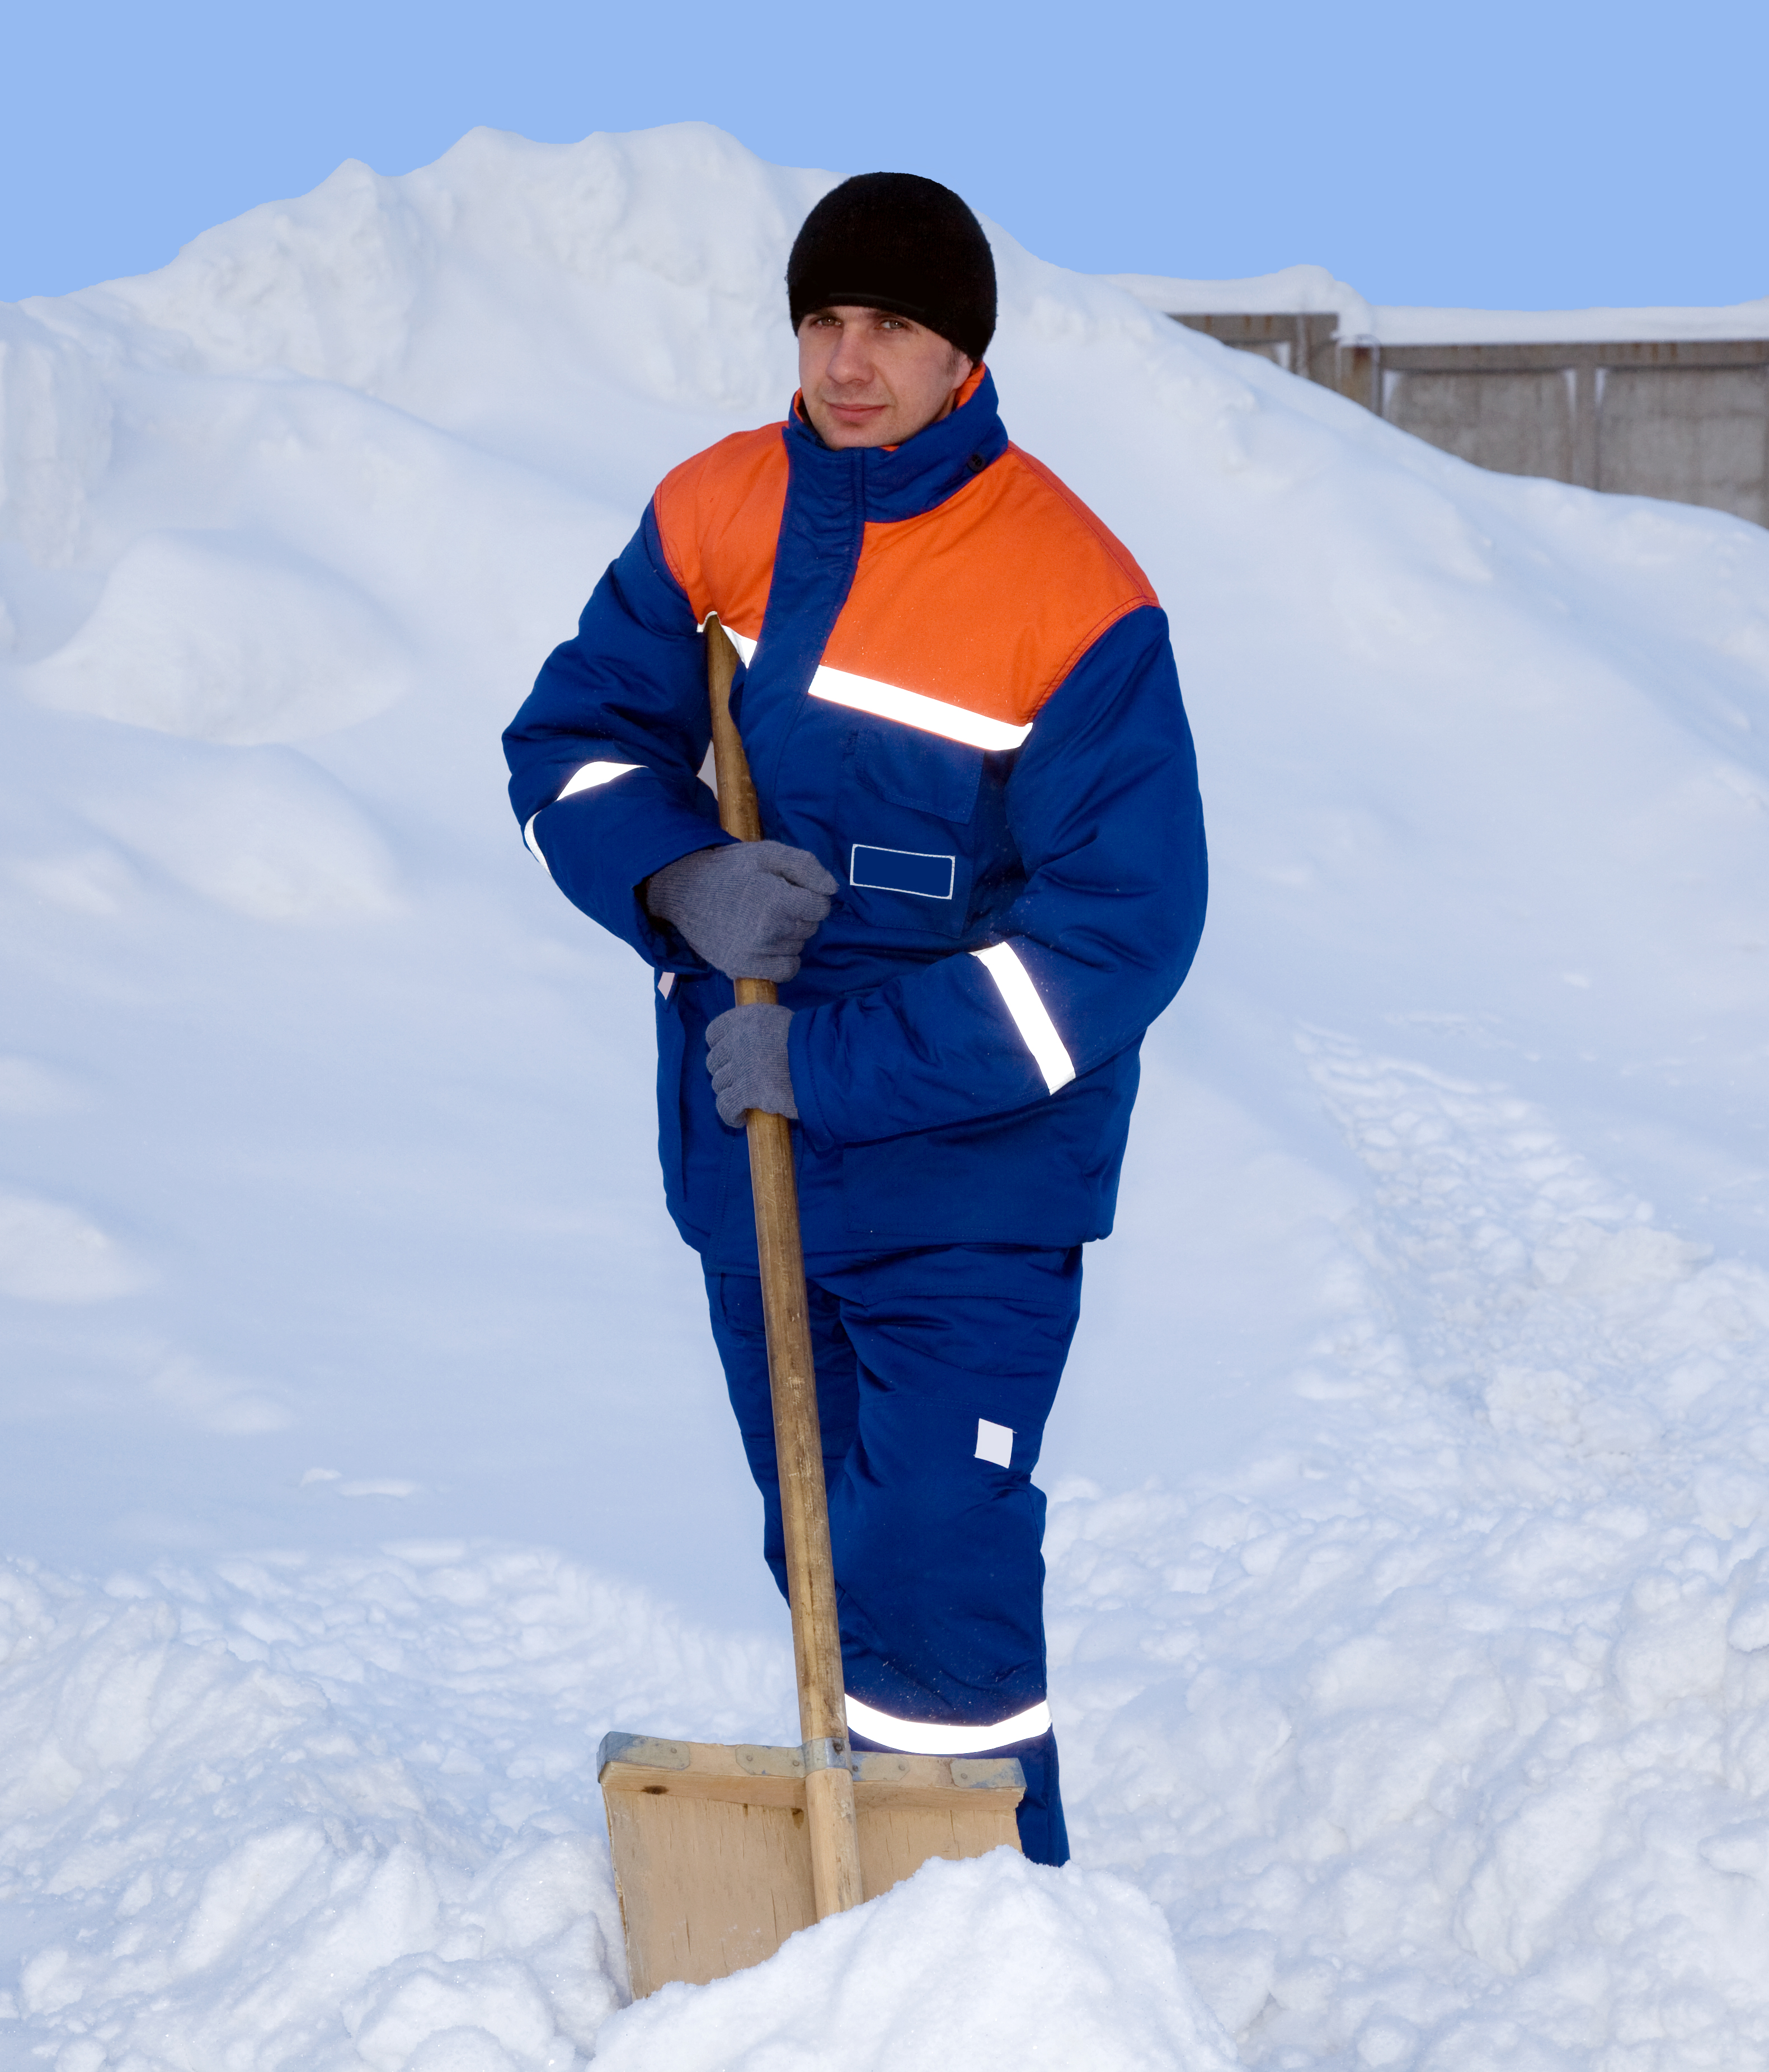 Worker in the winter suit consisting of a jacket and trousers against the backdrop of the snow